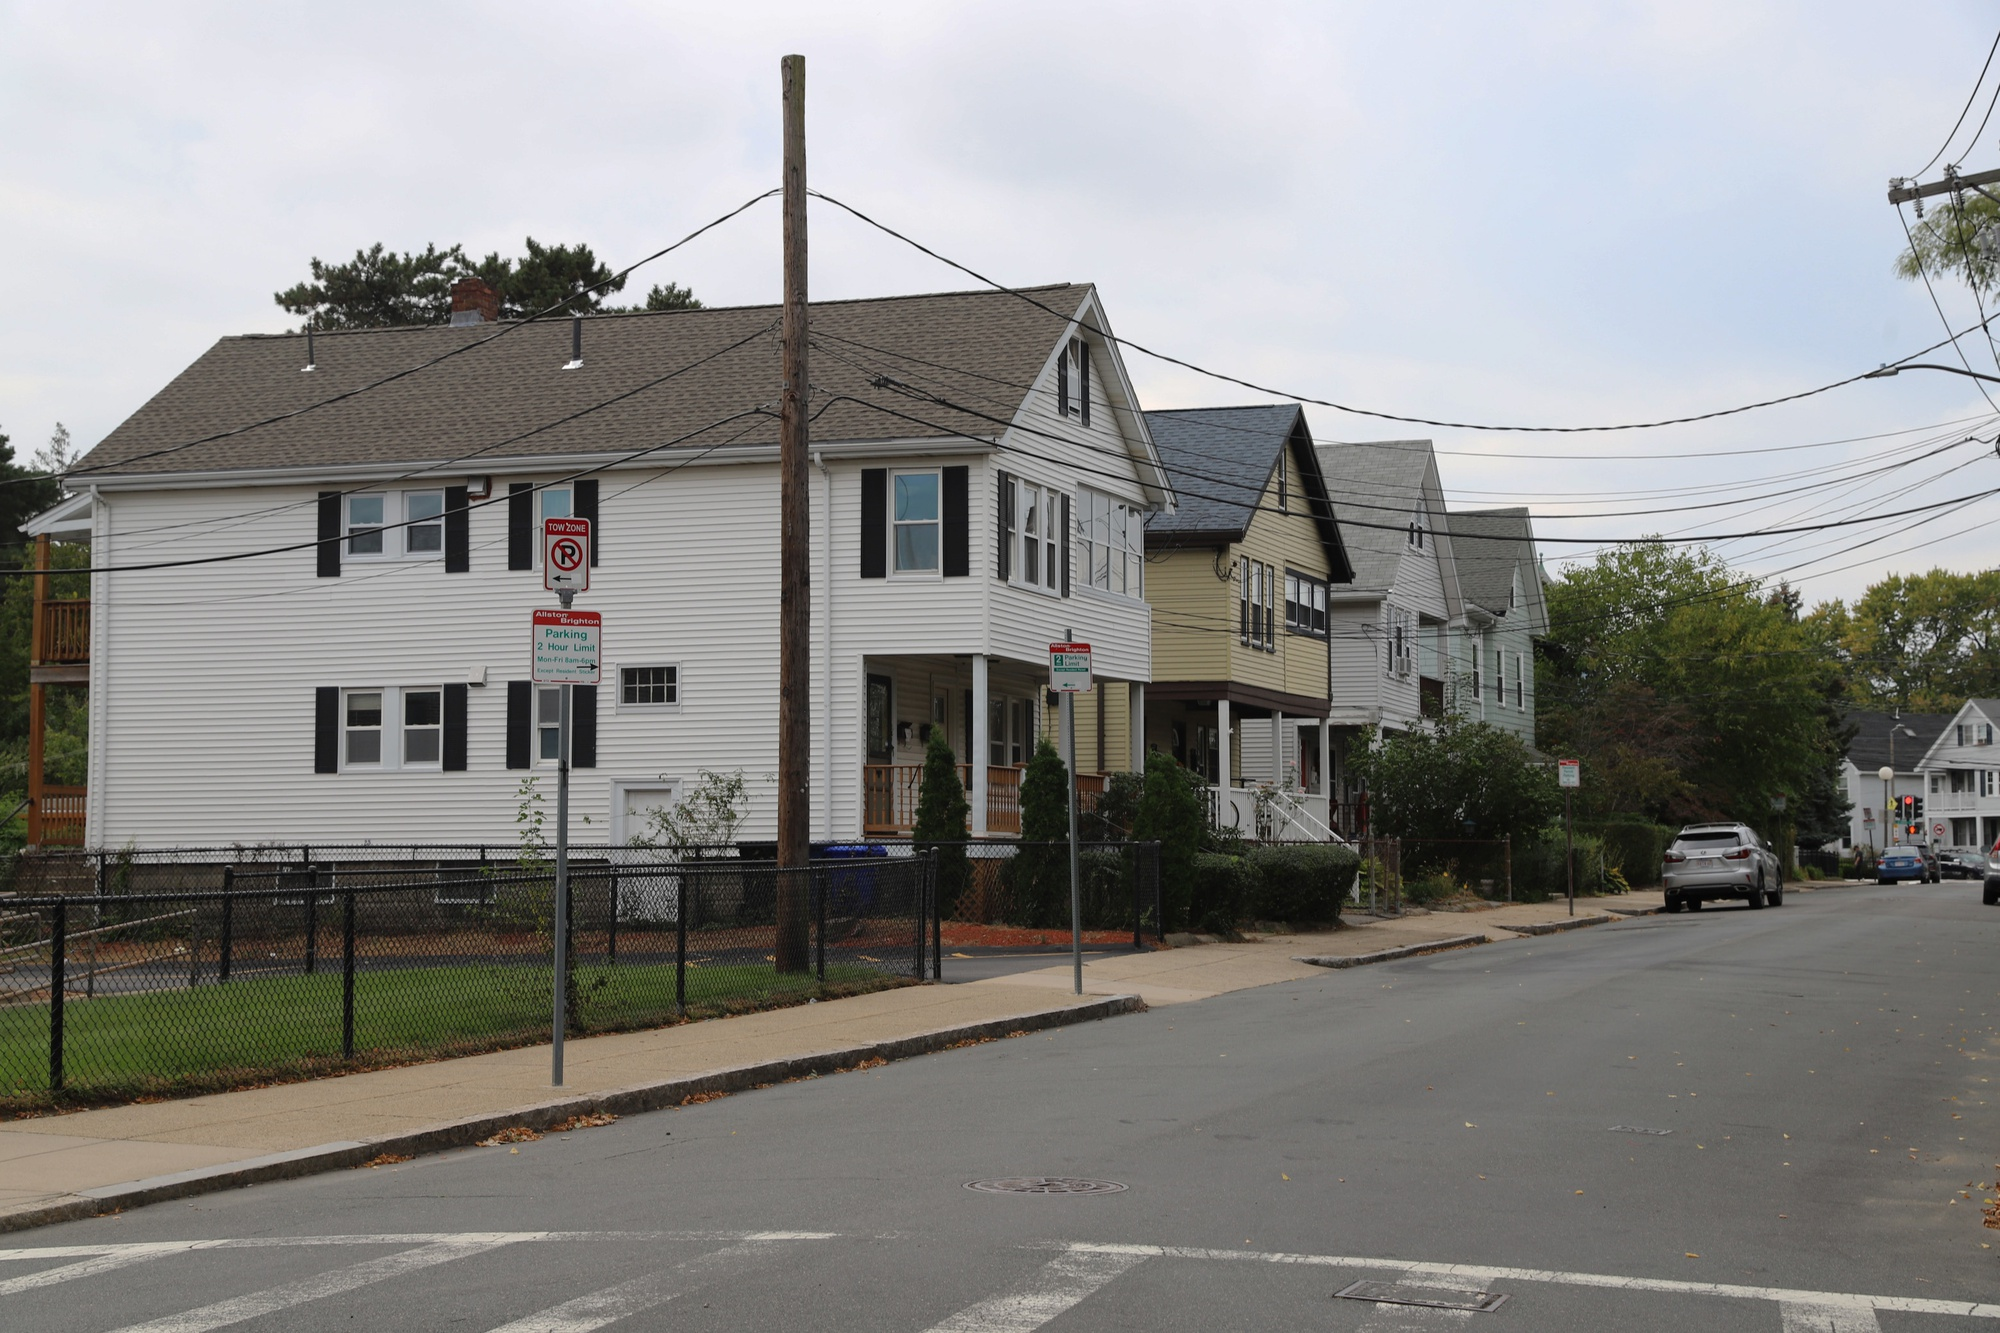 Kingsley Street is just one of the many roads in Allston undergoing a period of gentrification, with average home prices jumping from $350,000 to $500,000 between 2011 and 2019.